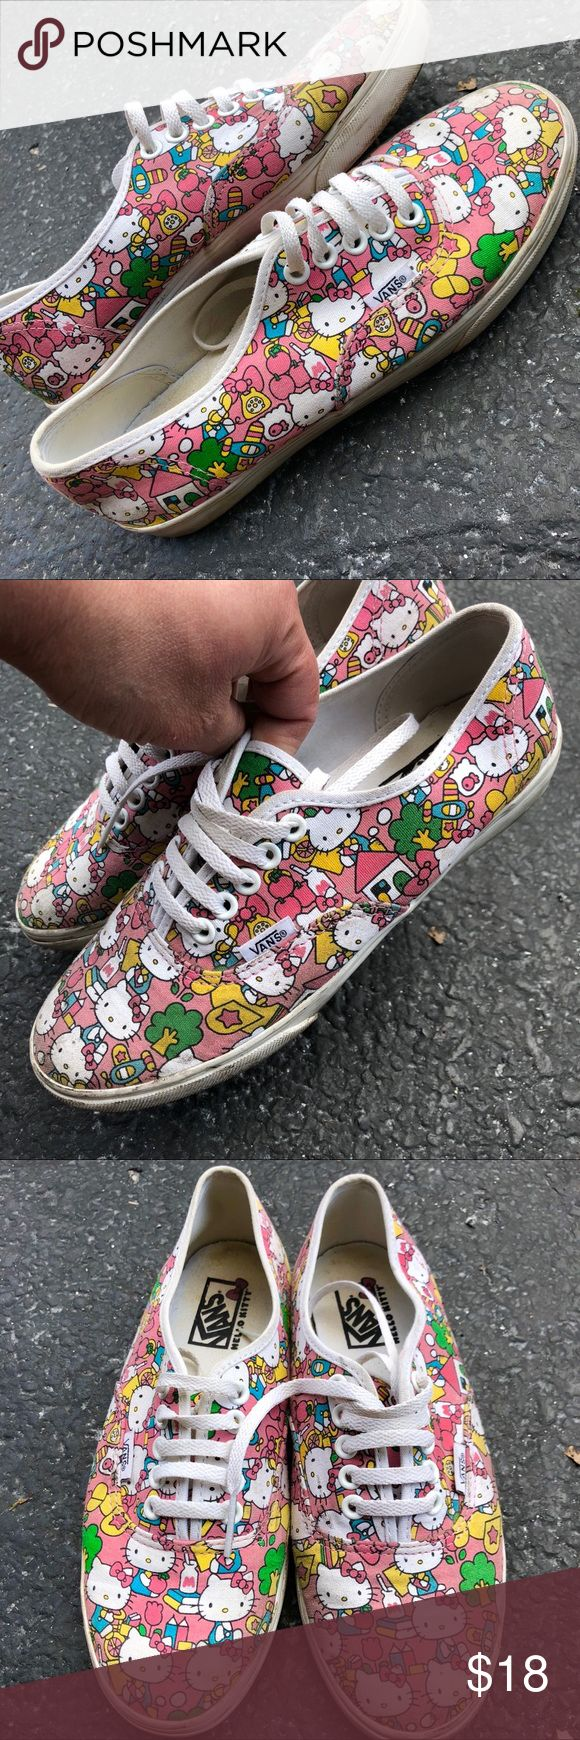 Hello Kitty VANS size 7 Vguc Cute!! Hello kitty baby pink and blues ladies vans Clean and in lightly used very good condition. Size 7 Vans Shoes Sneakers